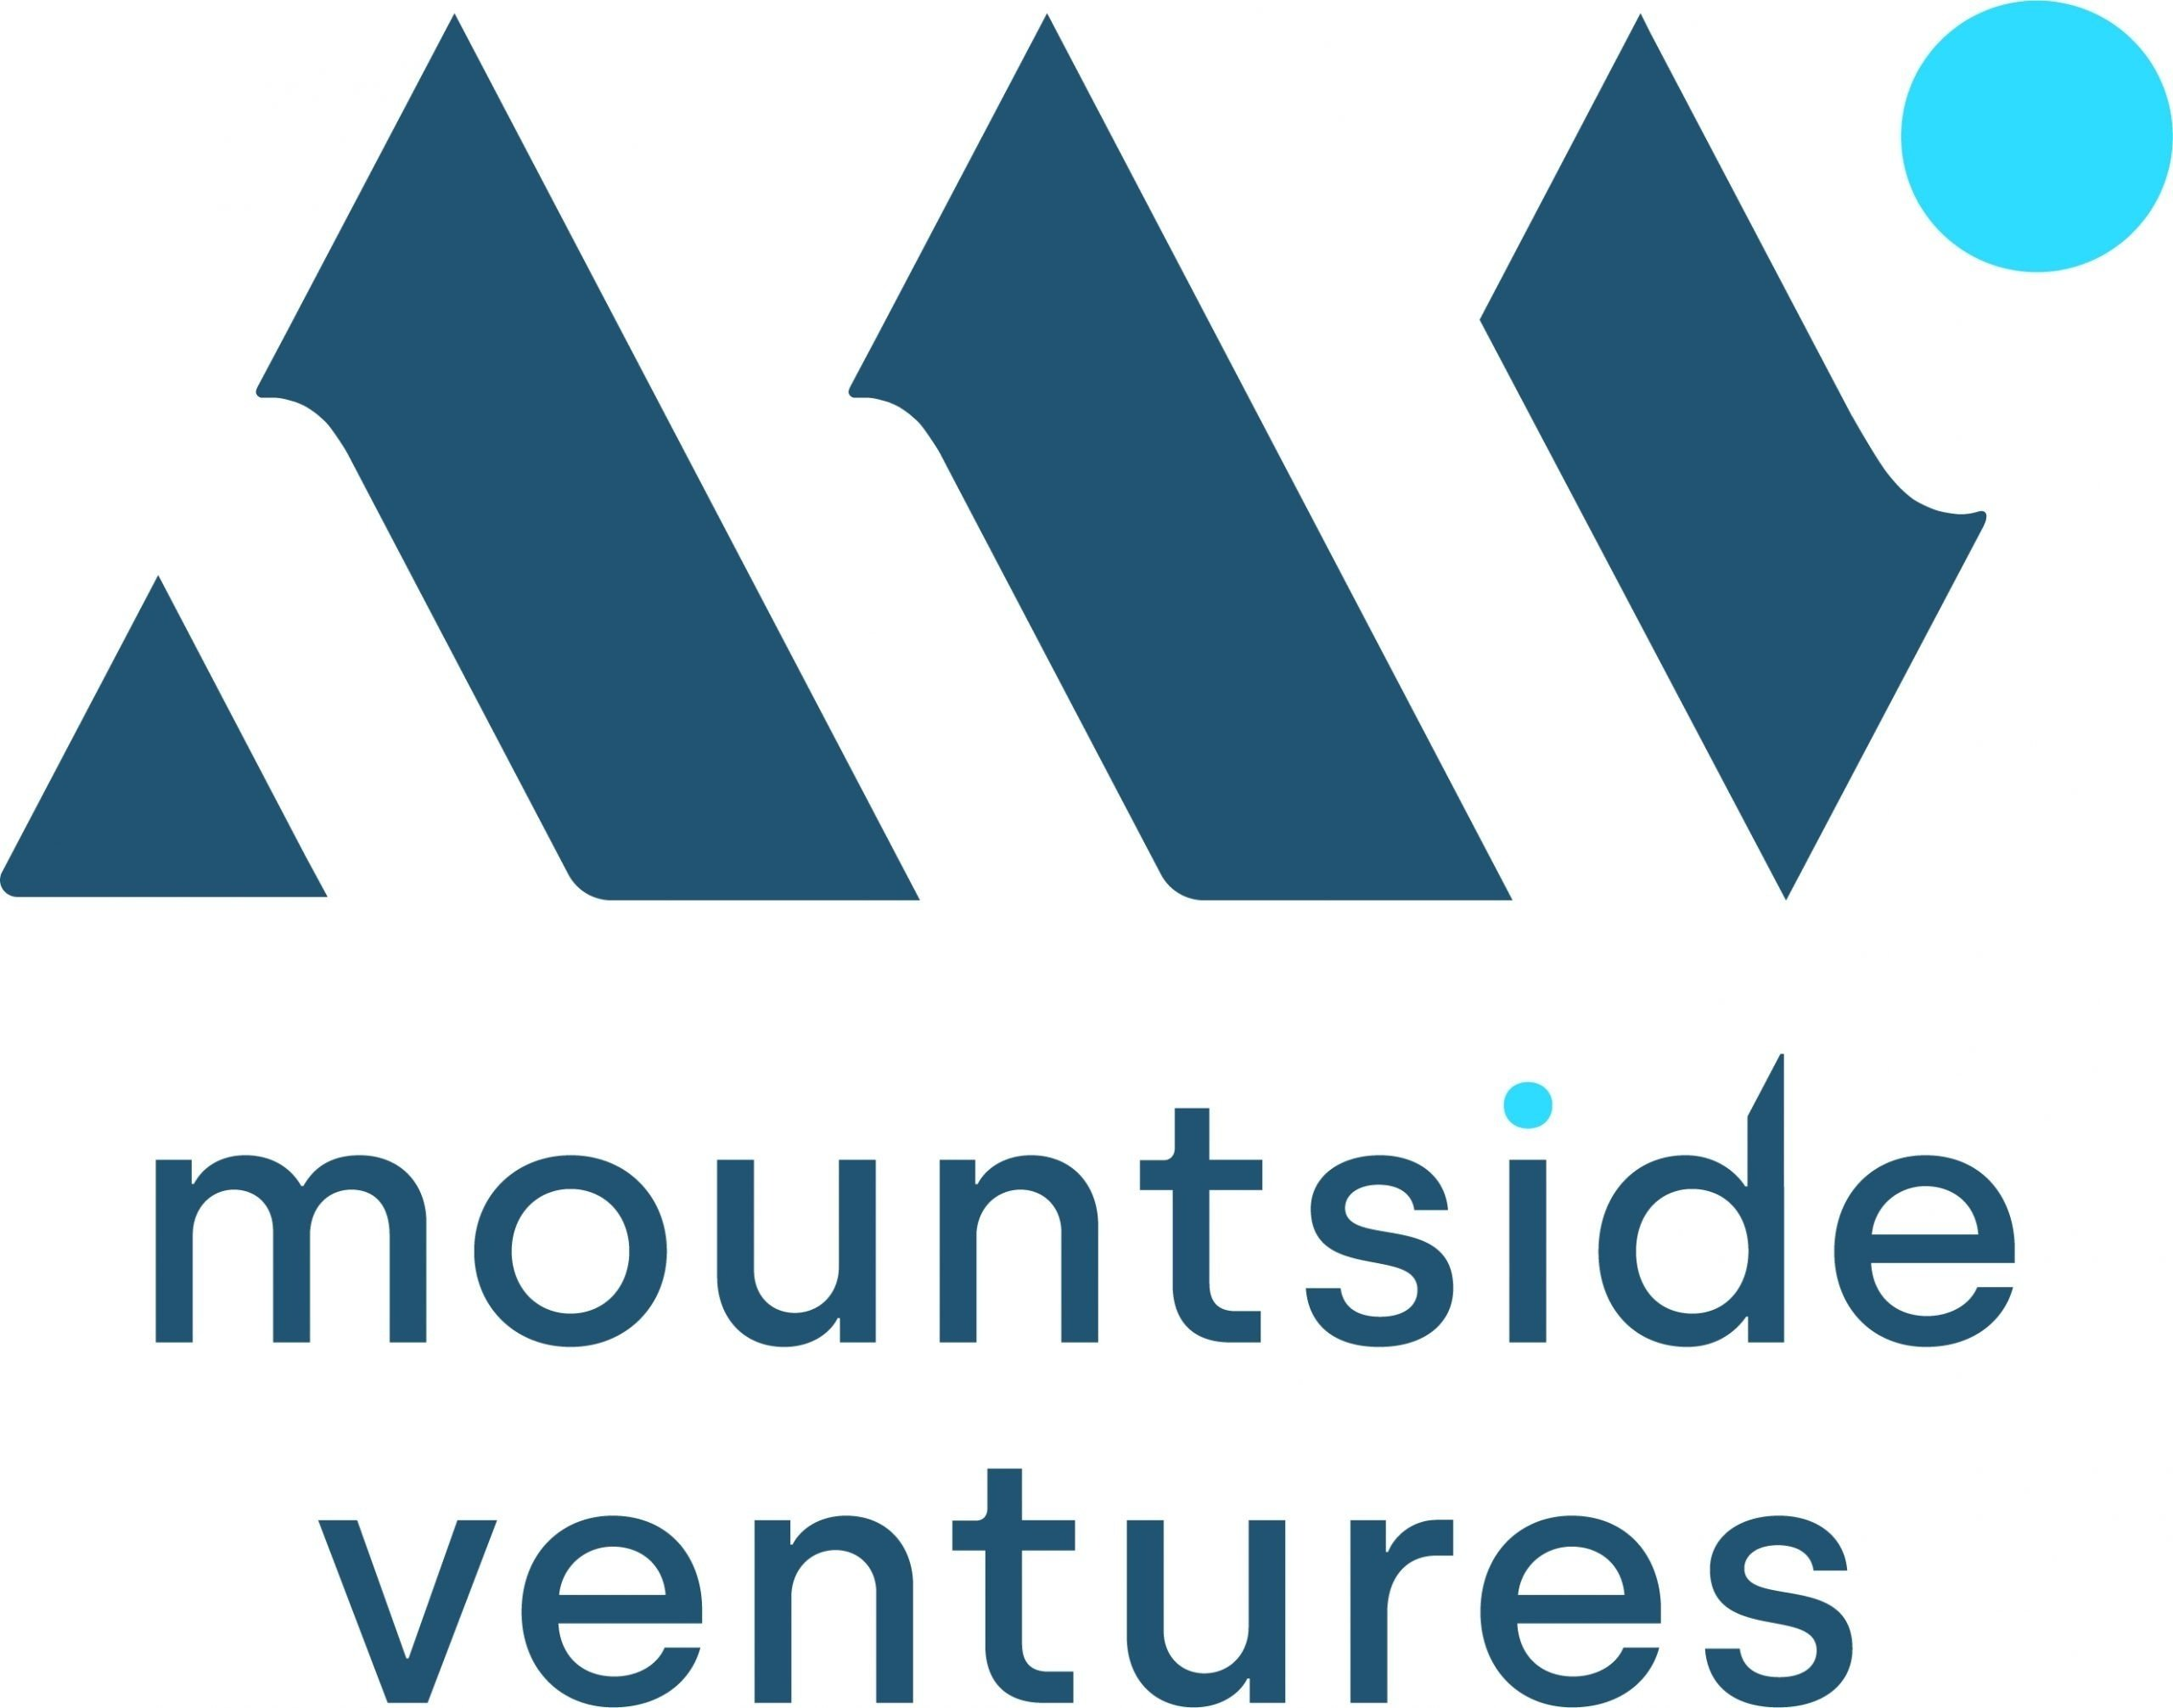 Our LP Report, The Capital Behind Venture, is out